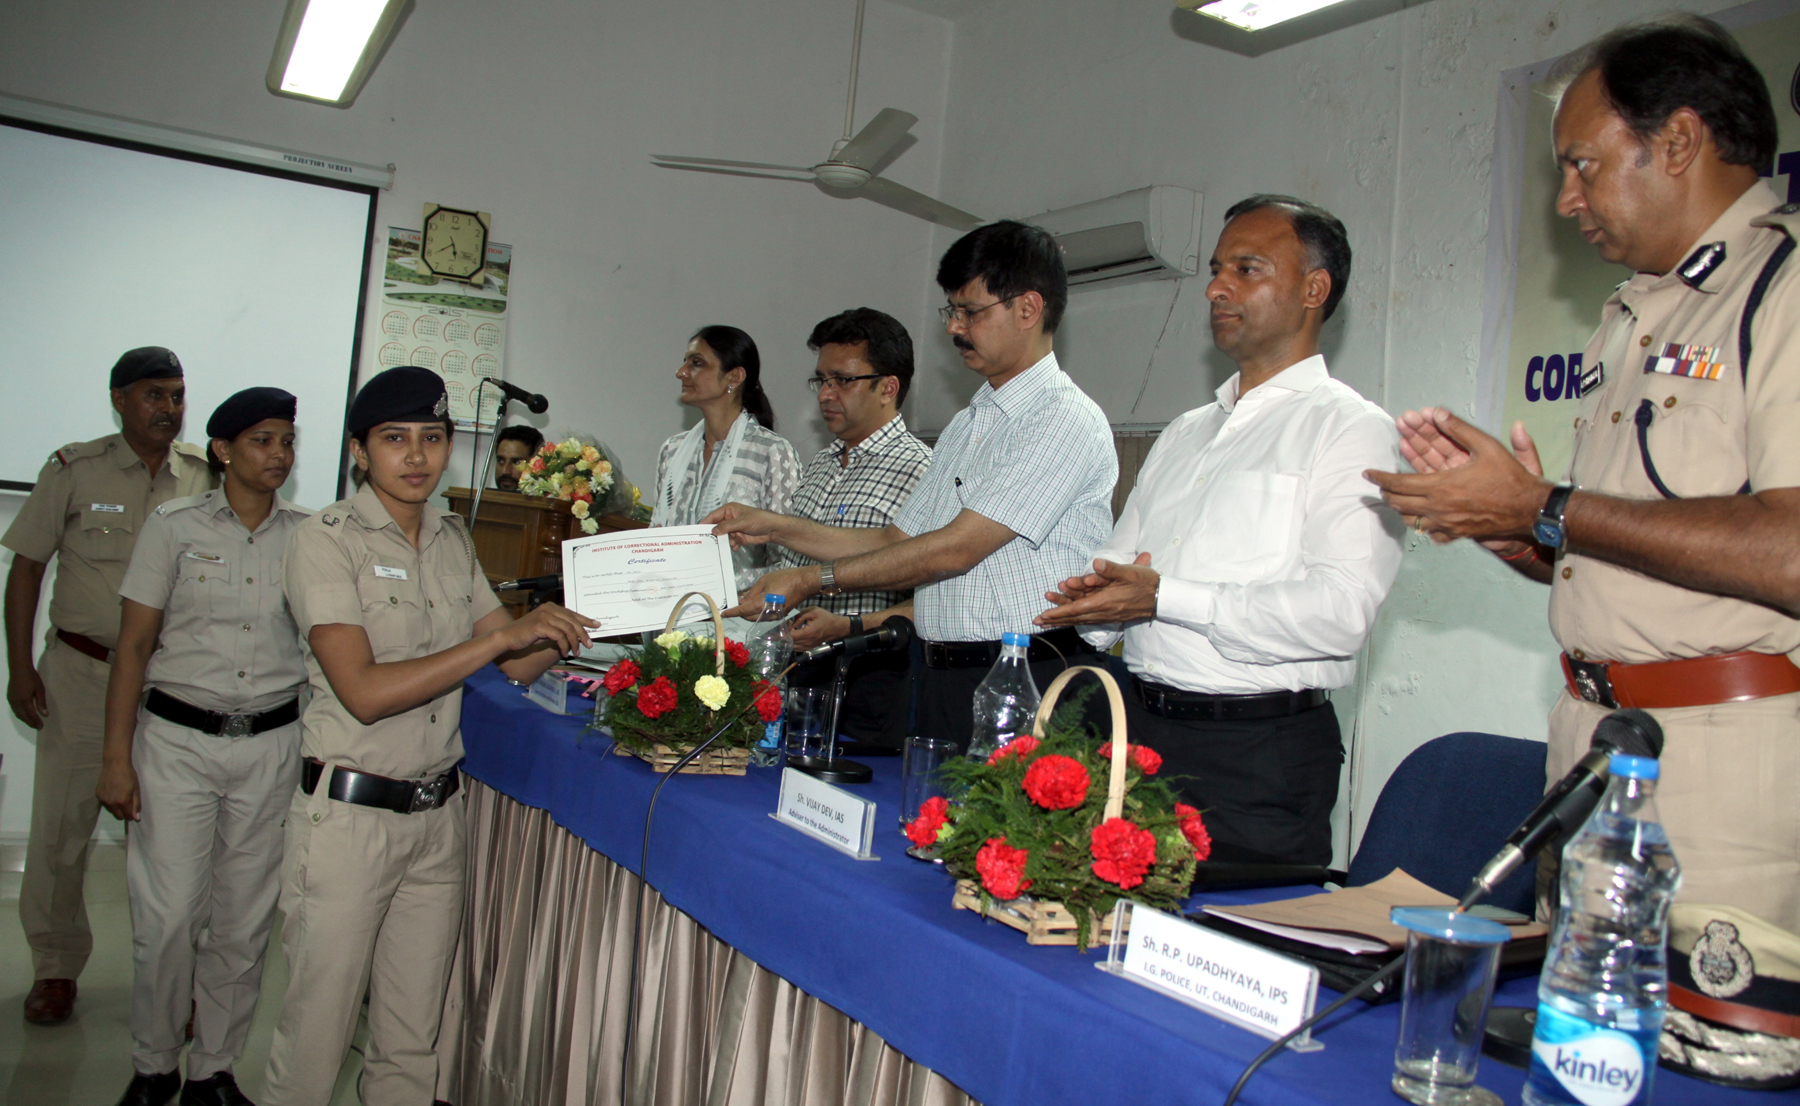 Shri Anant Kumar Singh, IAS, Additional Secretary (CS), Government of India, Ministry of Home Affairs, New Delhi distributing certificates to the participants in the one day workshop on ANTI HUMAN TRAFFICKIN at Regional Institute of Correctional Administration at Sector-26, Chandigarh on Friday, July 03, 2015.